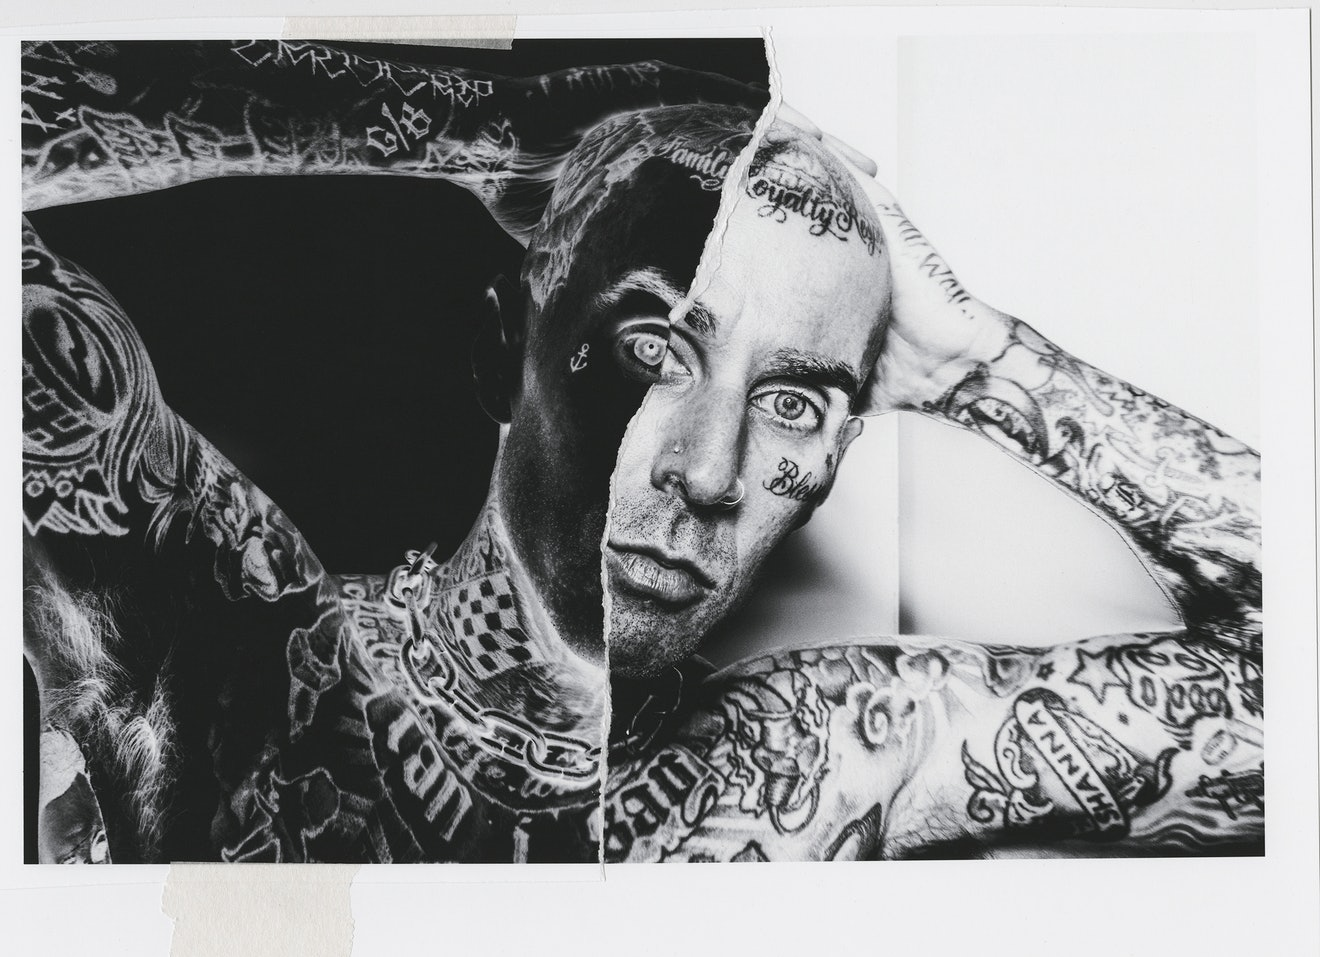 A black and white image of Travis Barker standing with his hands behind his head.